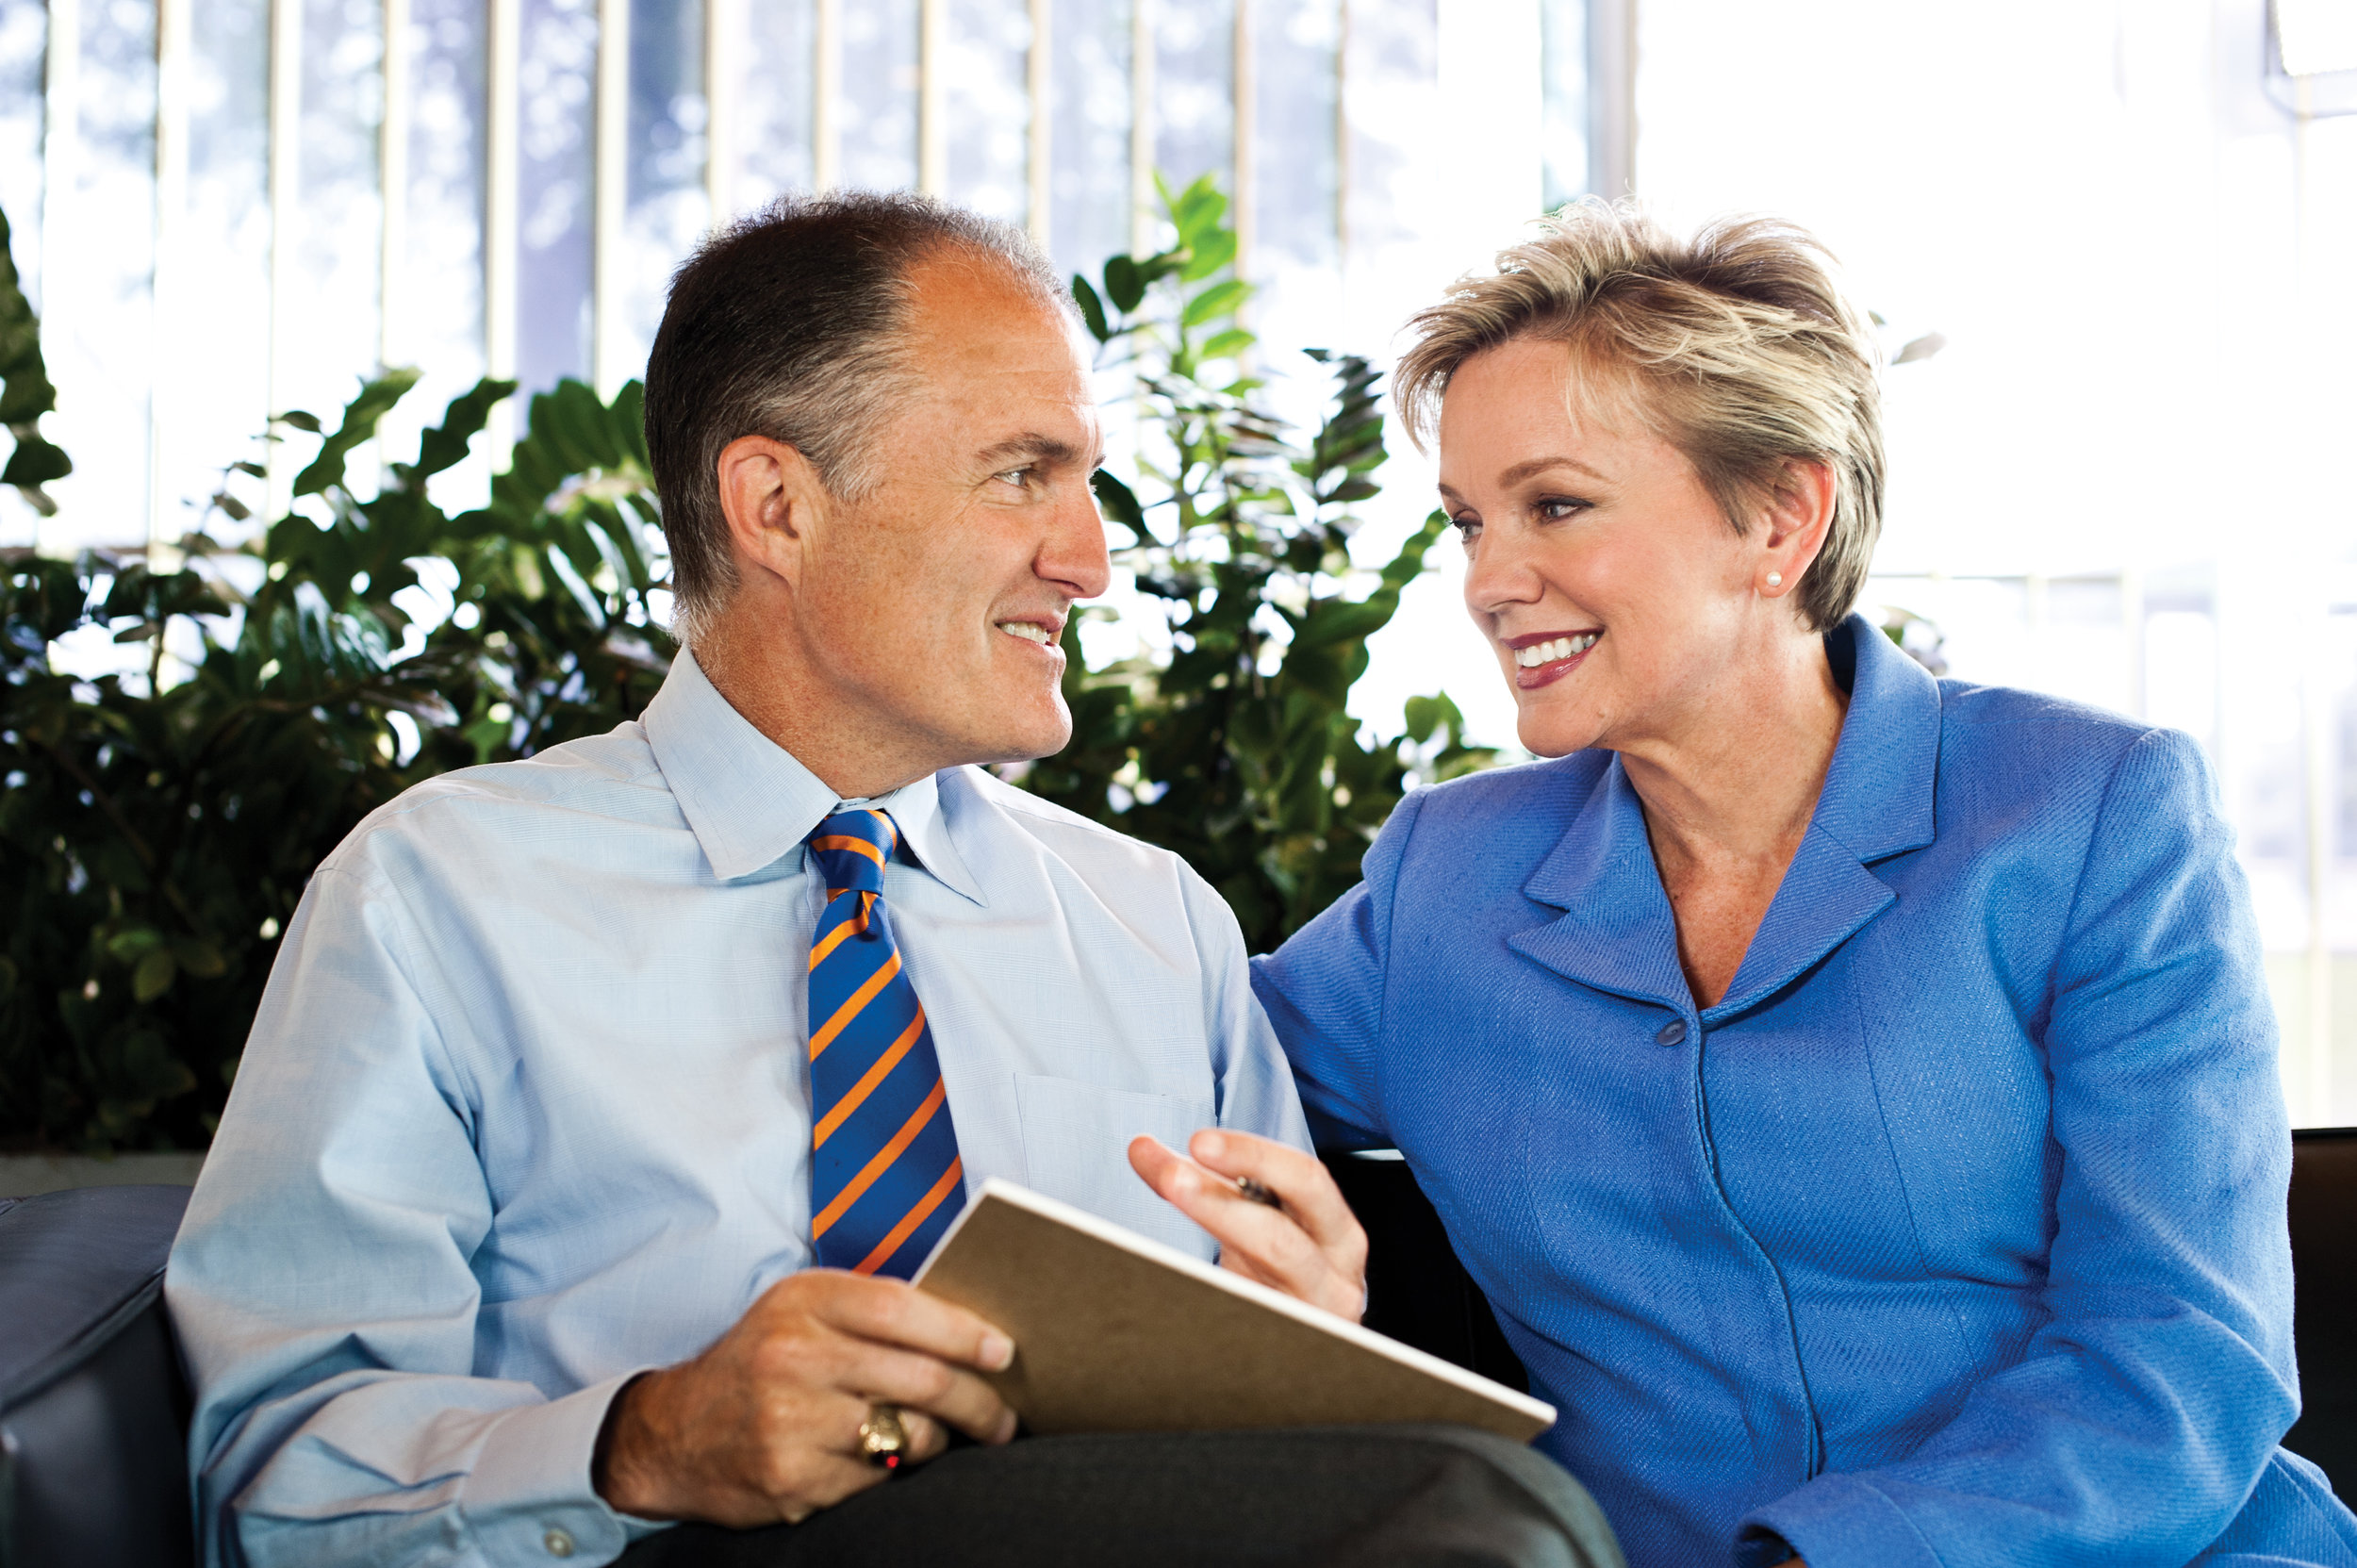 Granholm Mulhern Associates - Granholm Mulhern Associates offers speaking, consulting, leadership, coaching and training services to the business, government and non-profit sectors.